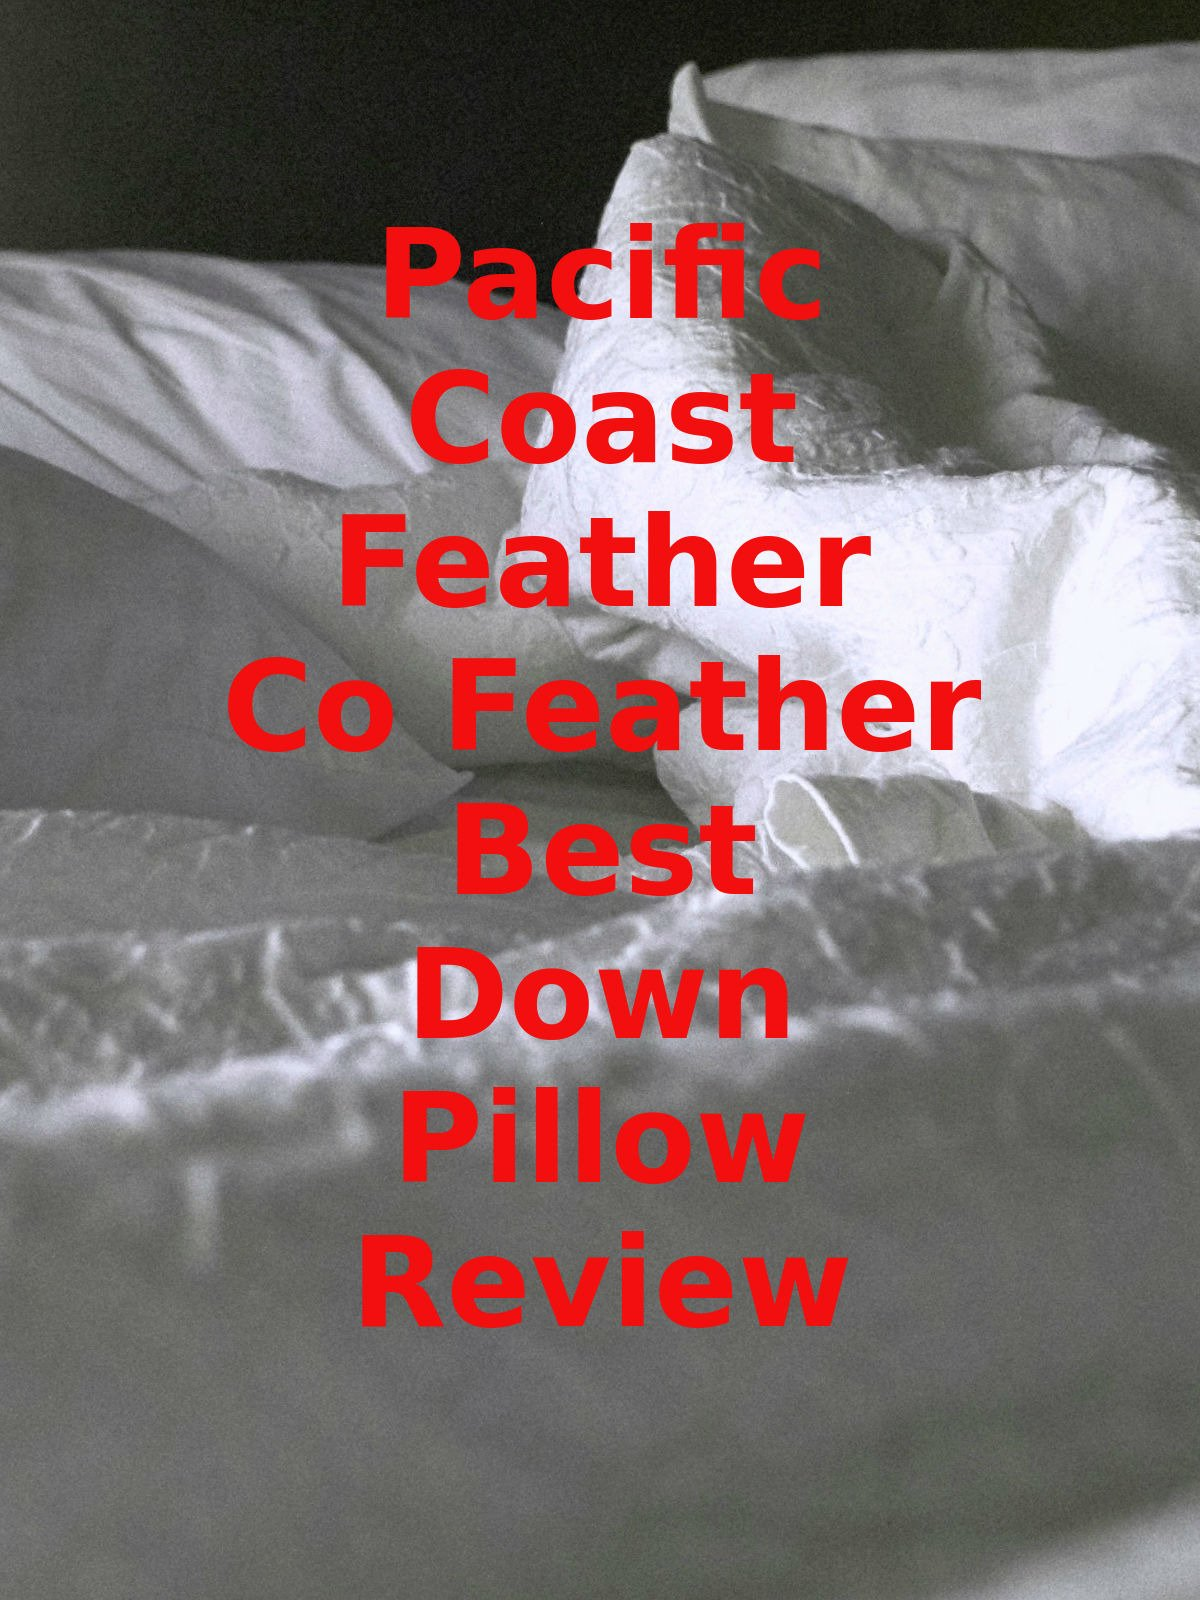 Review: Pacific Coast Feather Co Feather Best Down Pillow Review on Amazon Prime Instant Video UK